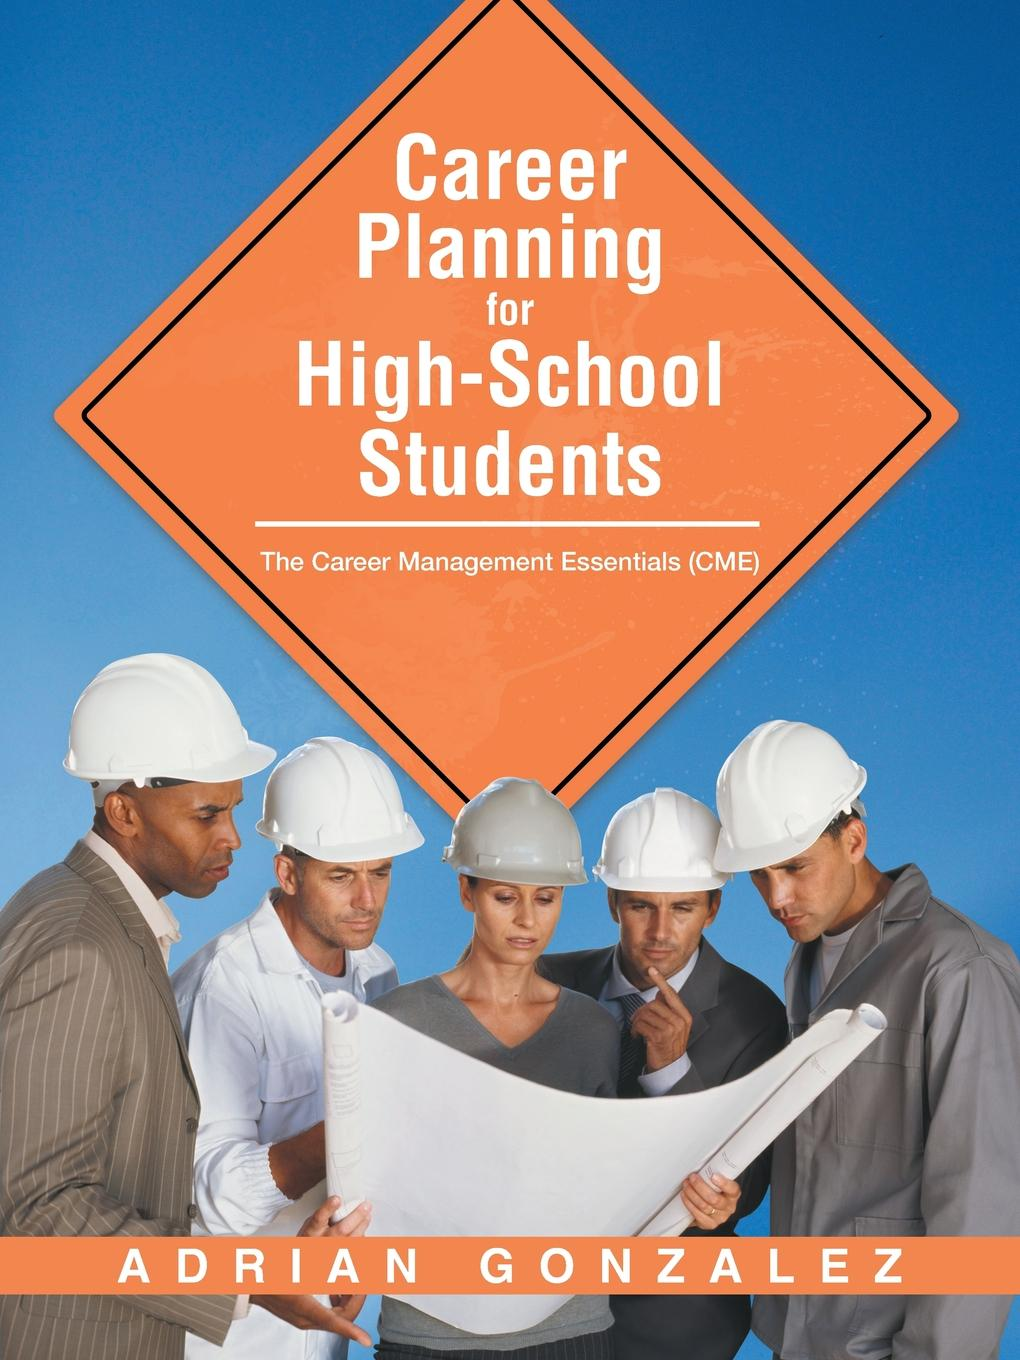 Adrian Gonzalez Career Planning for High-School Students. The Career Management Essentials (CME) sundar christopher a navigating graduate school and beyond a career guide for graduate students and a must read for every advisor